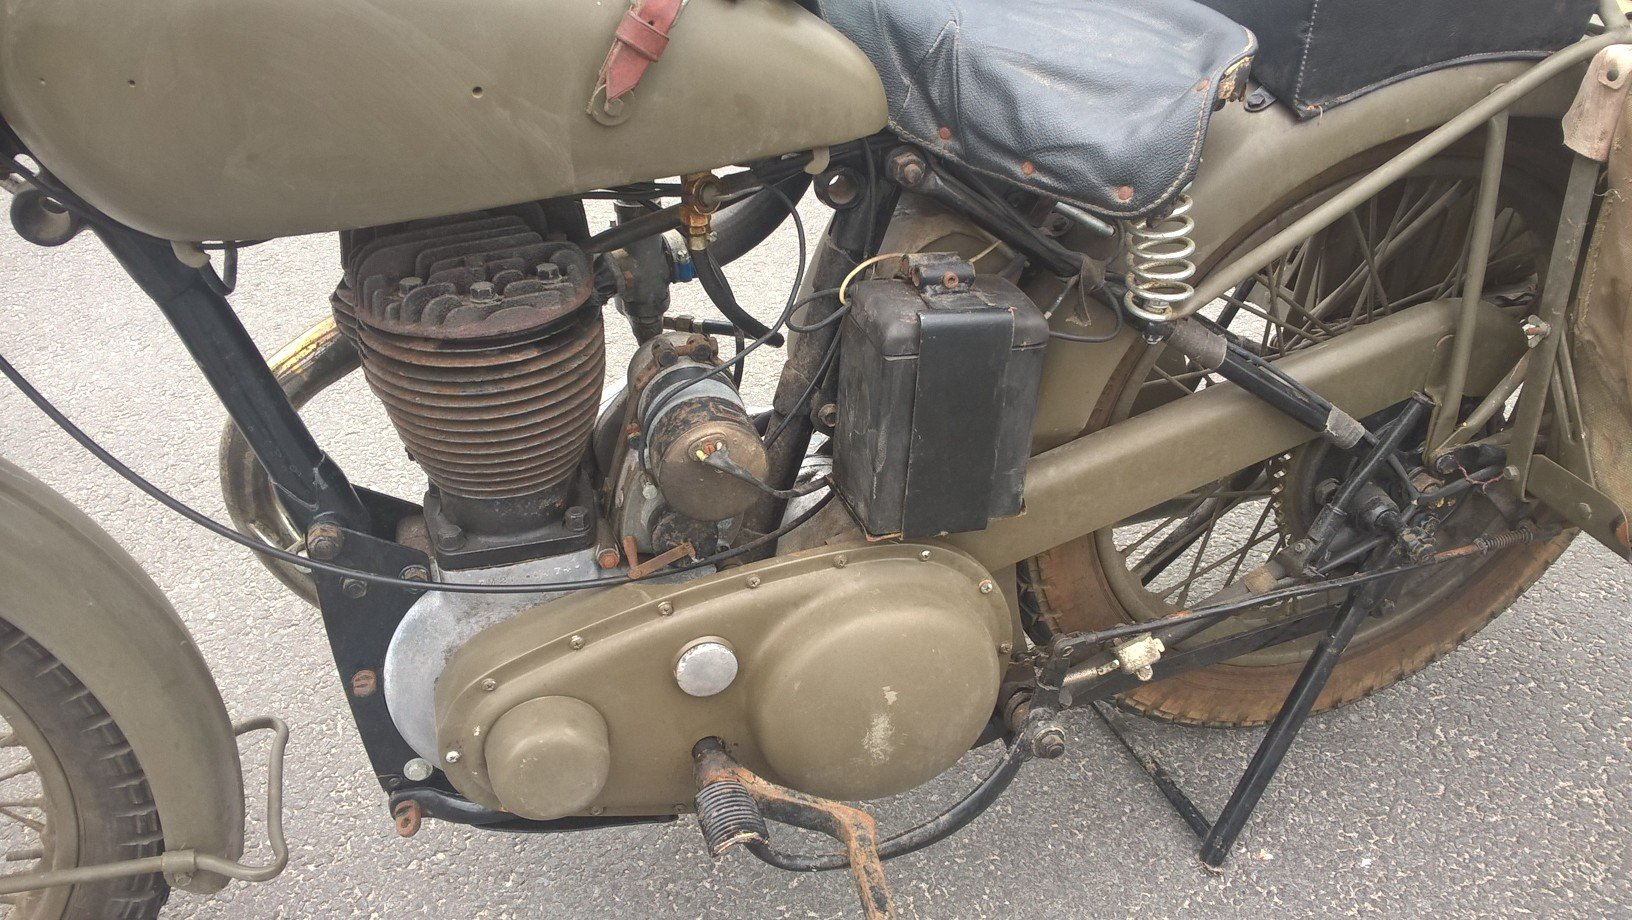 1950 Bsa model m21 swedish army For Sale (picture 3 of 6)